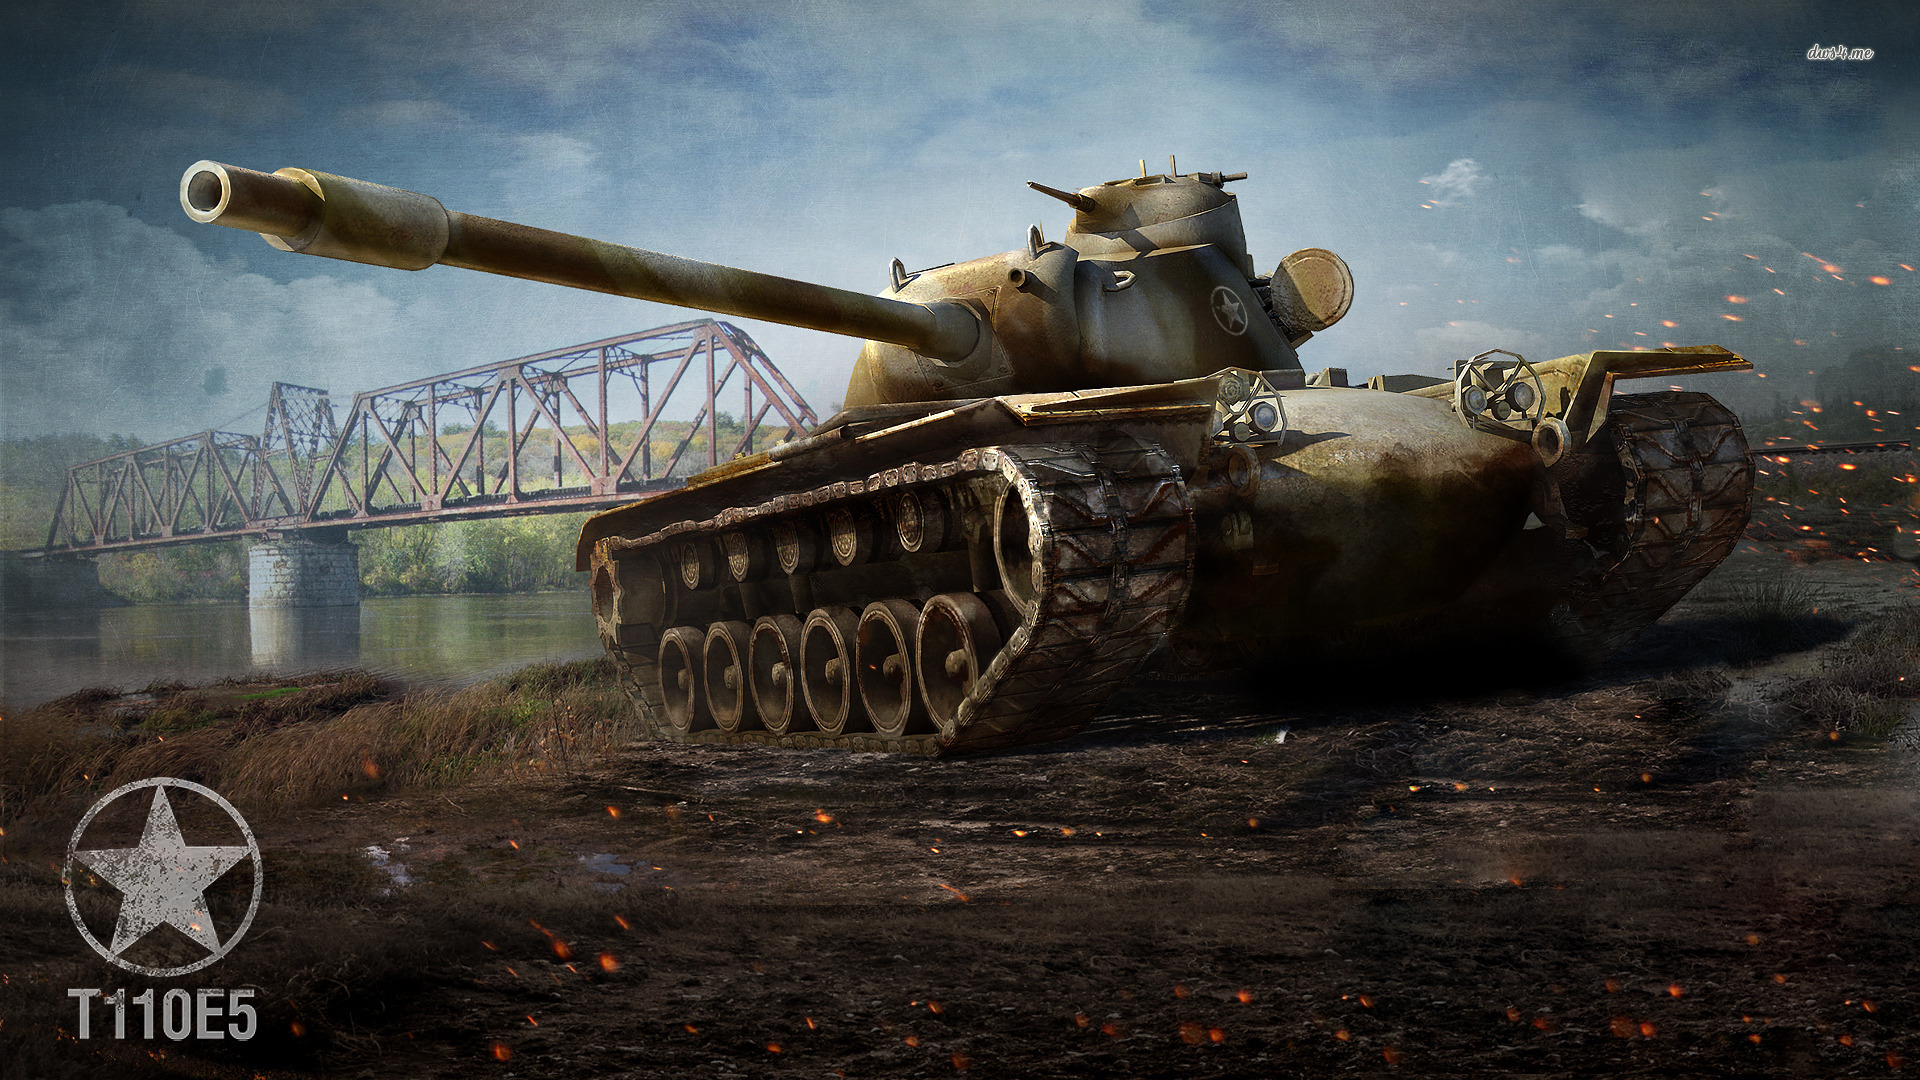 world of tanks hd wallpapers backgrounds wallpaper 1920x1080